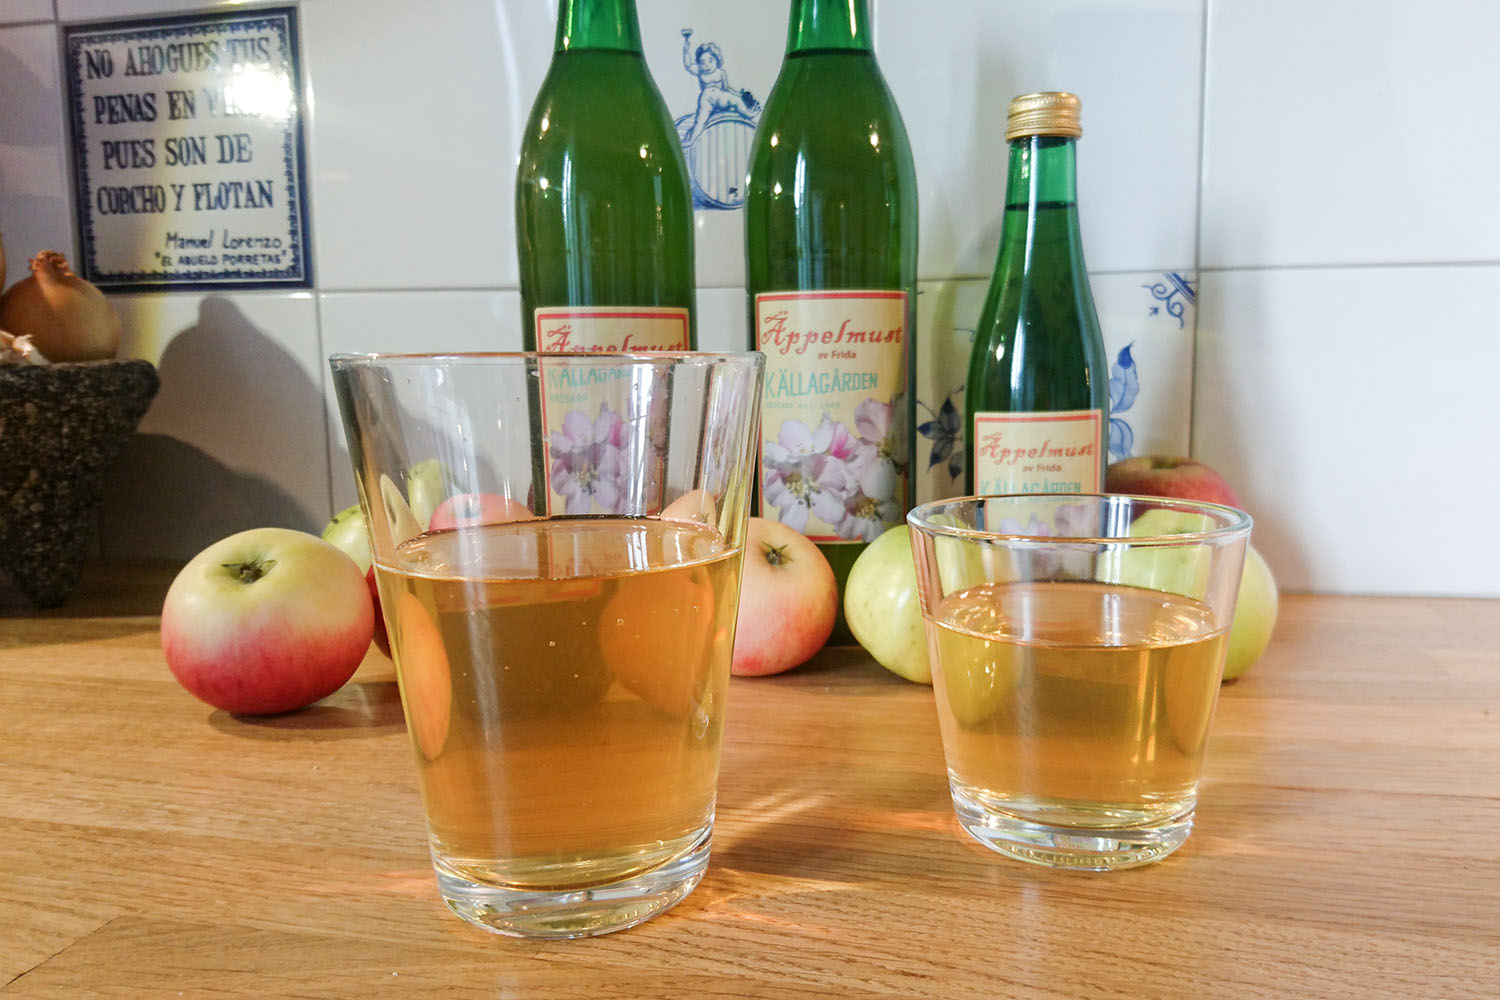 Källagården's apple juice.